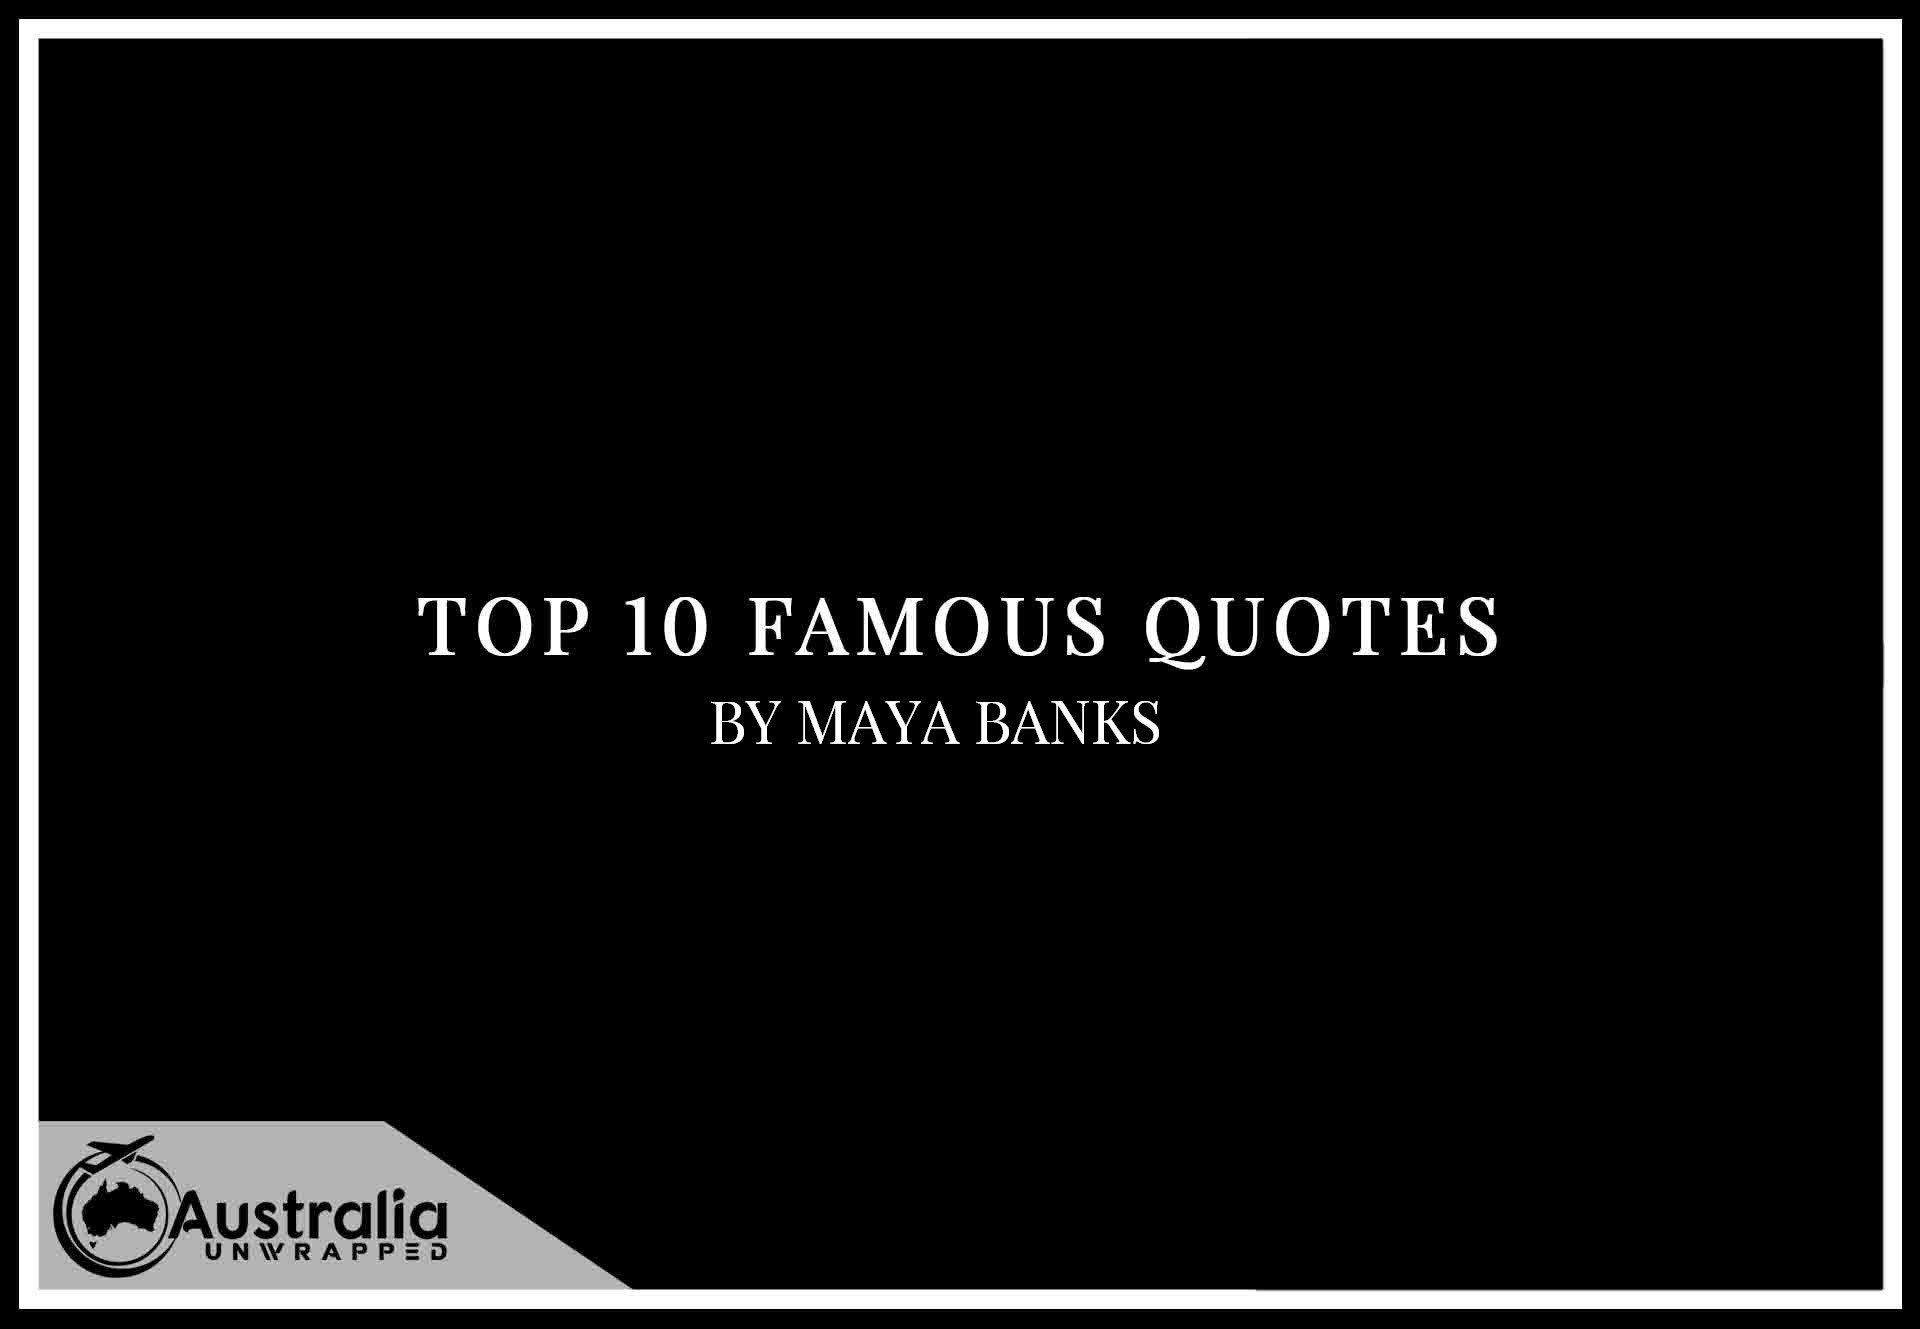 Top 10 Famous Quotes by Author Maya Banks